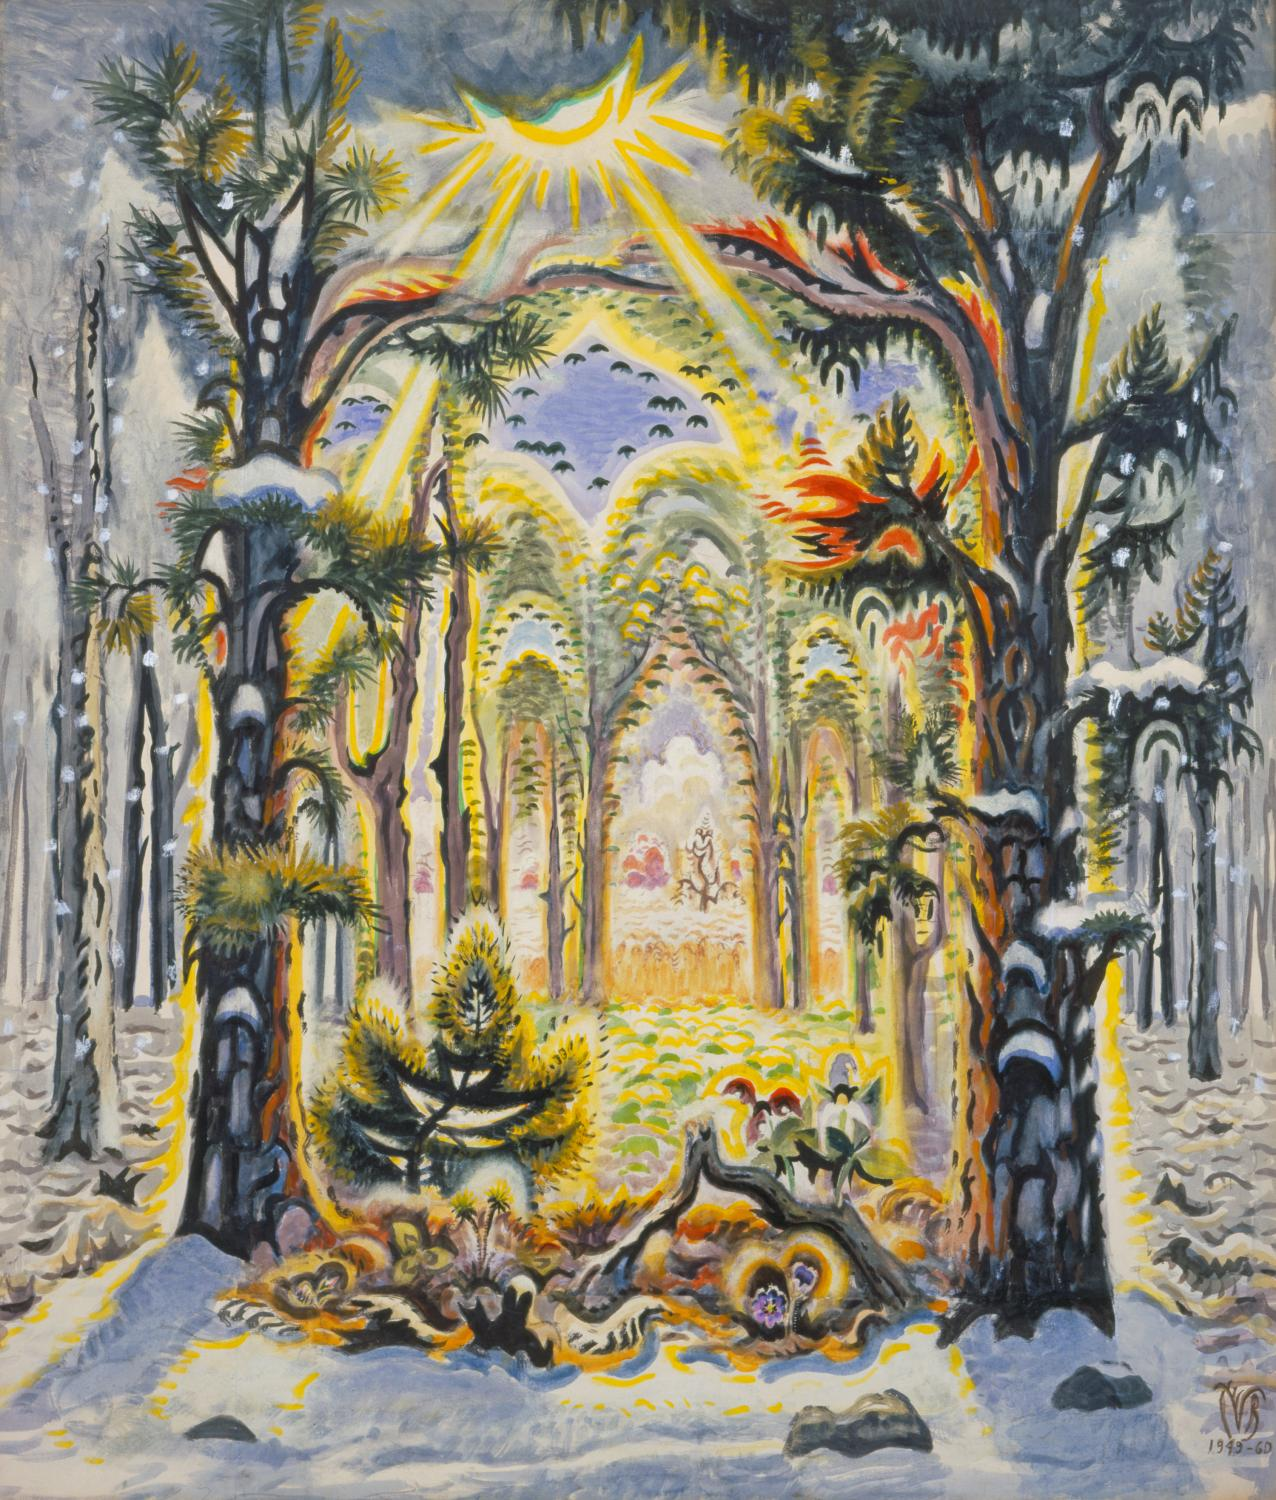 Charles Burchfield. The Four Seasons, 1949–1960. Watercolor. Festival of Arts Purchase Fund 1961-2-1